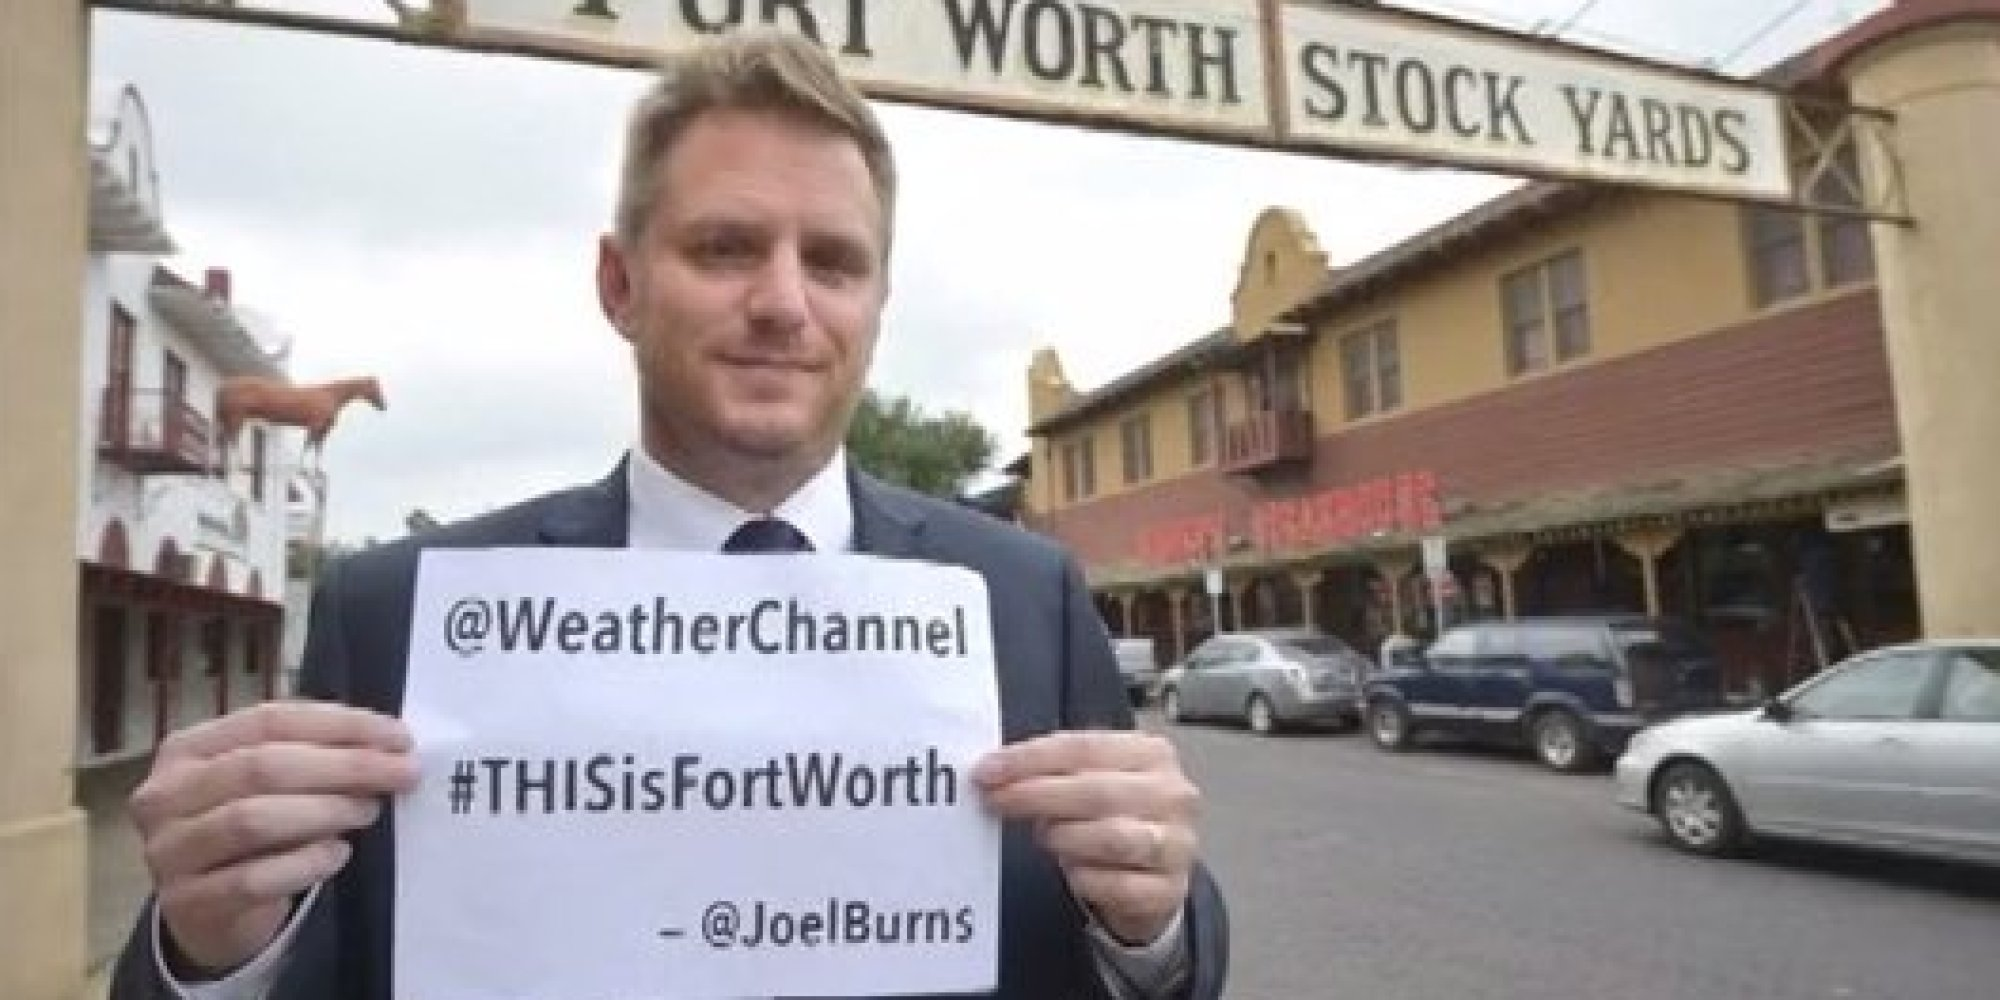 weather channel caught in storm of controversy over